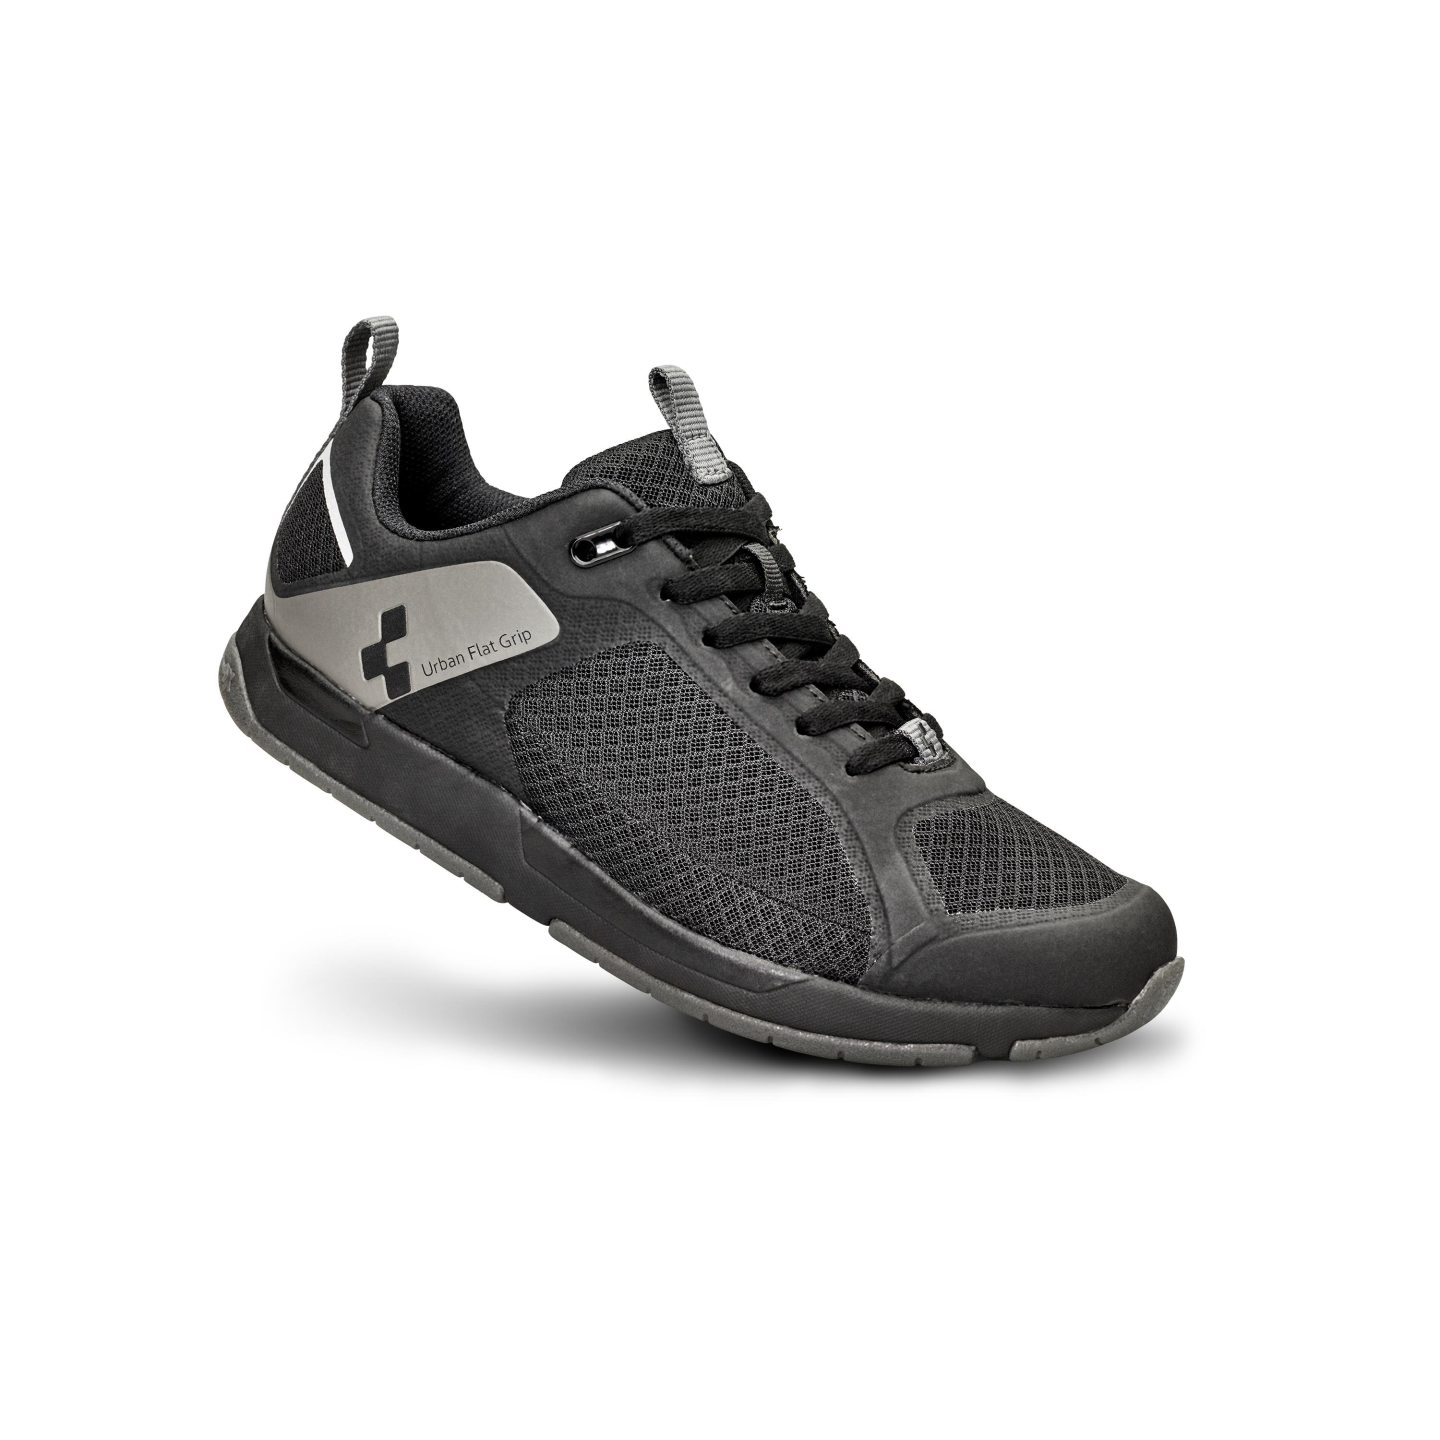 Pantofi CUBE Shoes URBAN FLAT GRIP Blackline 40